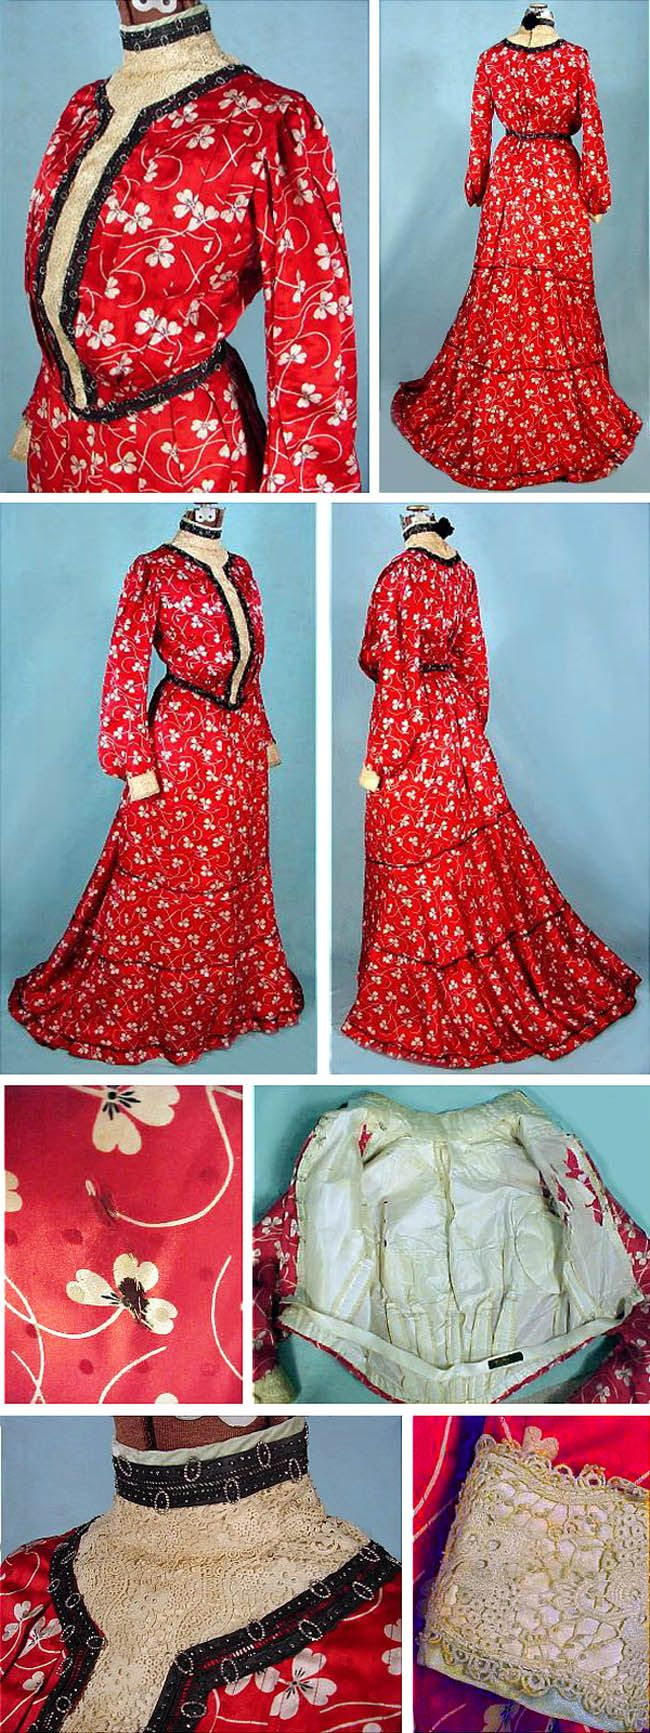 Two-piece afternoon dress, Cotter, Utica, NY, ca. 1902. Red & white patterned silk with steel-beaded black velvet trim. Irish crocheted bodice and cuffs. Antique Dress via The Wayback Machine